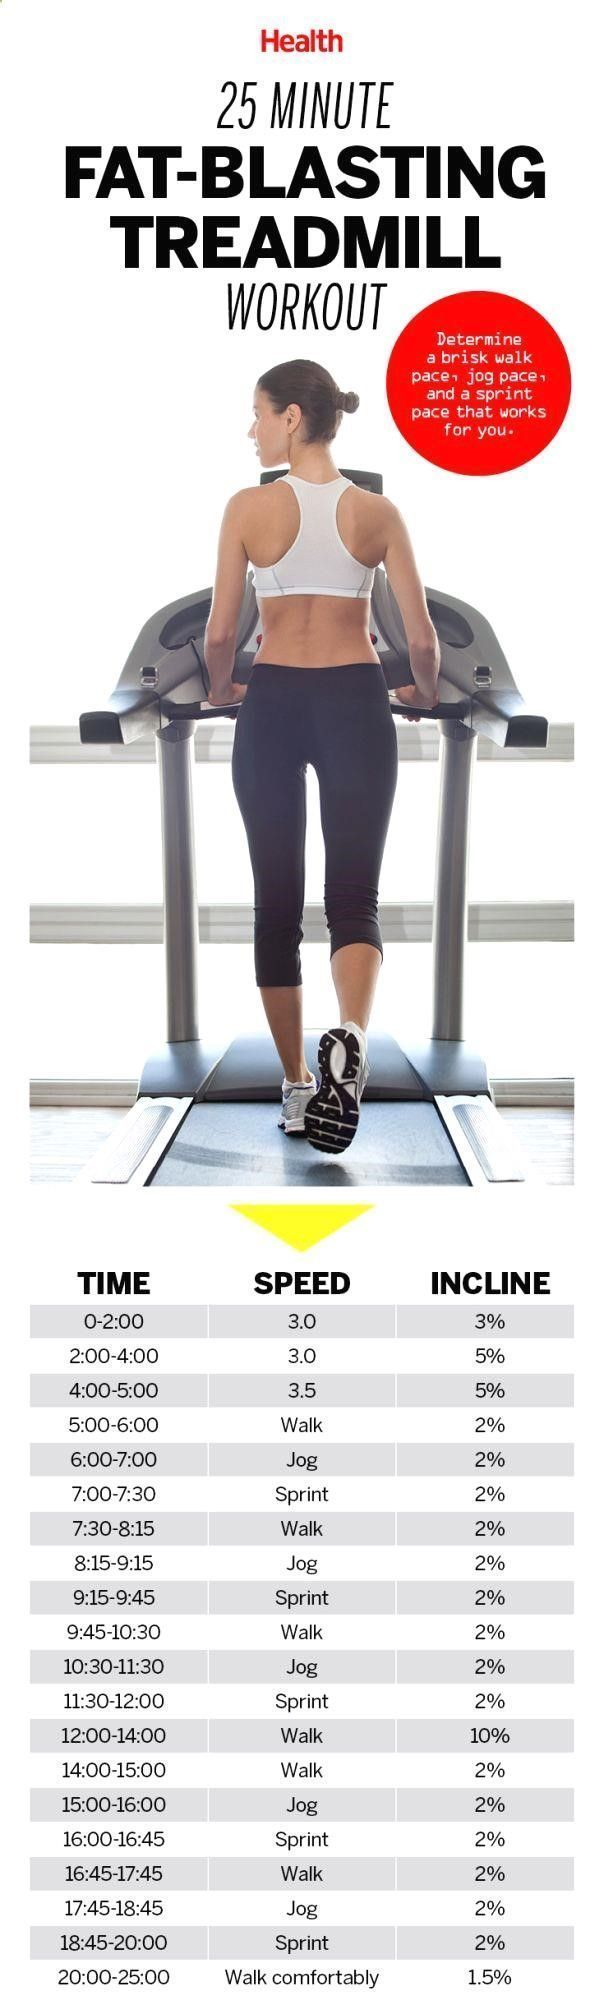 Fat Fast Shrinking Signal Diet-Recipes - This 25-minute fat-b This 25-minute fat-blasting treadmill workout is actually fun! Lose weight and tone up with this super fast and easy routine. - Do This One Unusual 10-Minute Trick Before Work To Melt Away 15+ Pounds of Belly Fat #howcanilose15poundsfast #lose15poundsfastandeasy